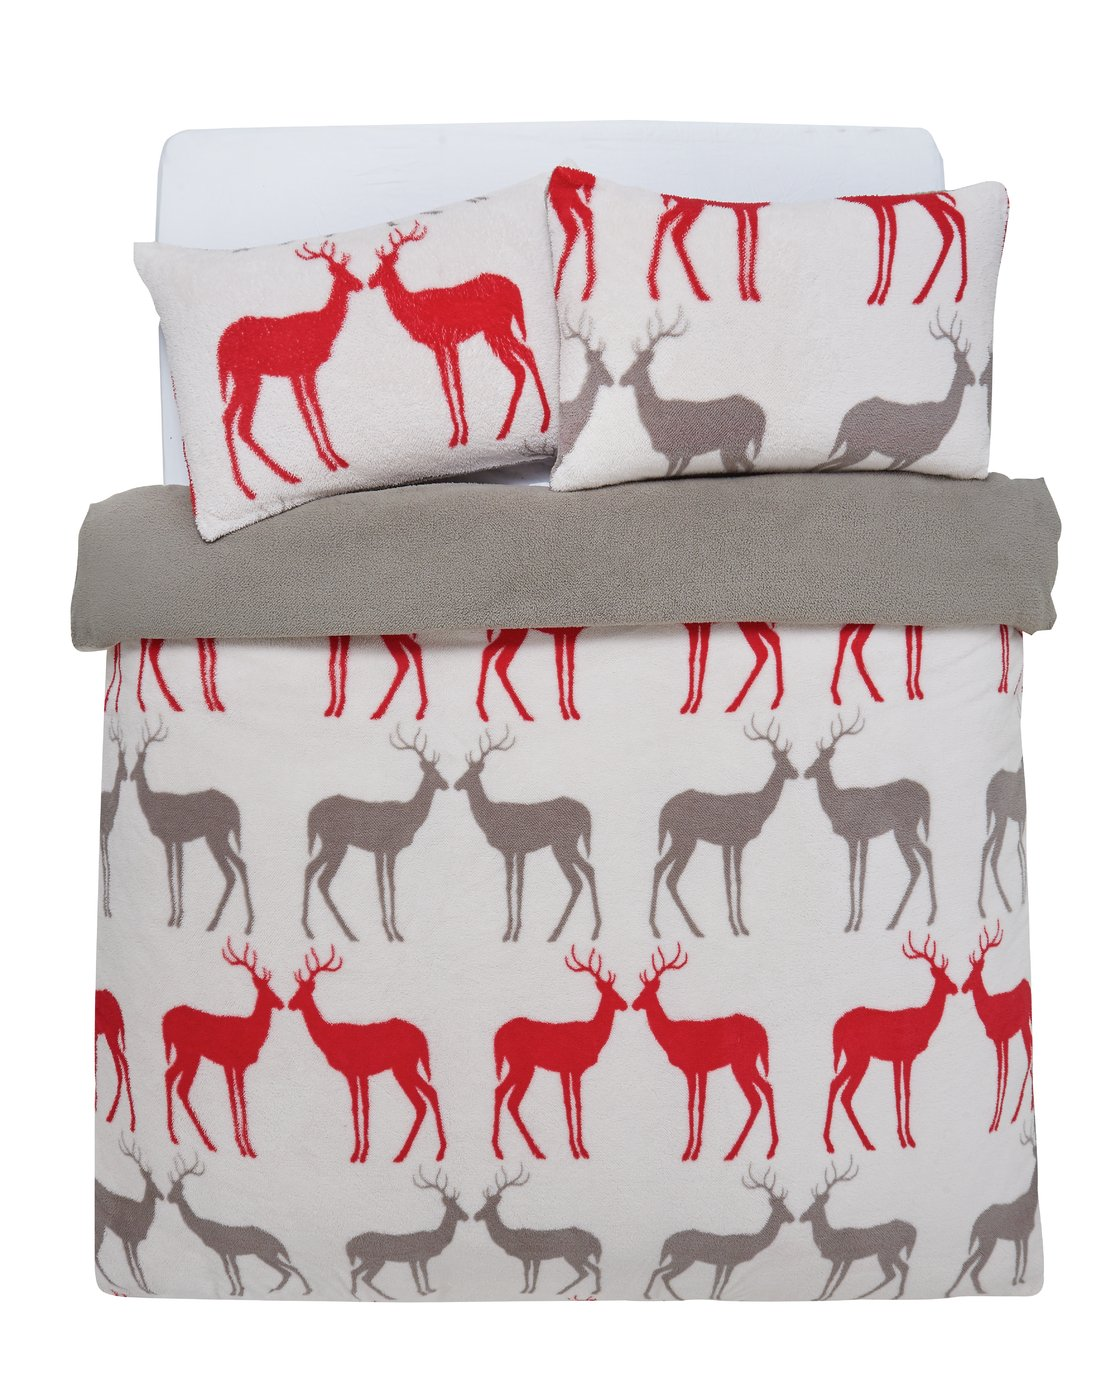 Argos Home Teddy Fleece Reindeer Bedding Set - Kingsize